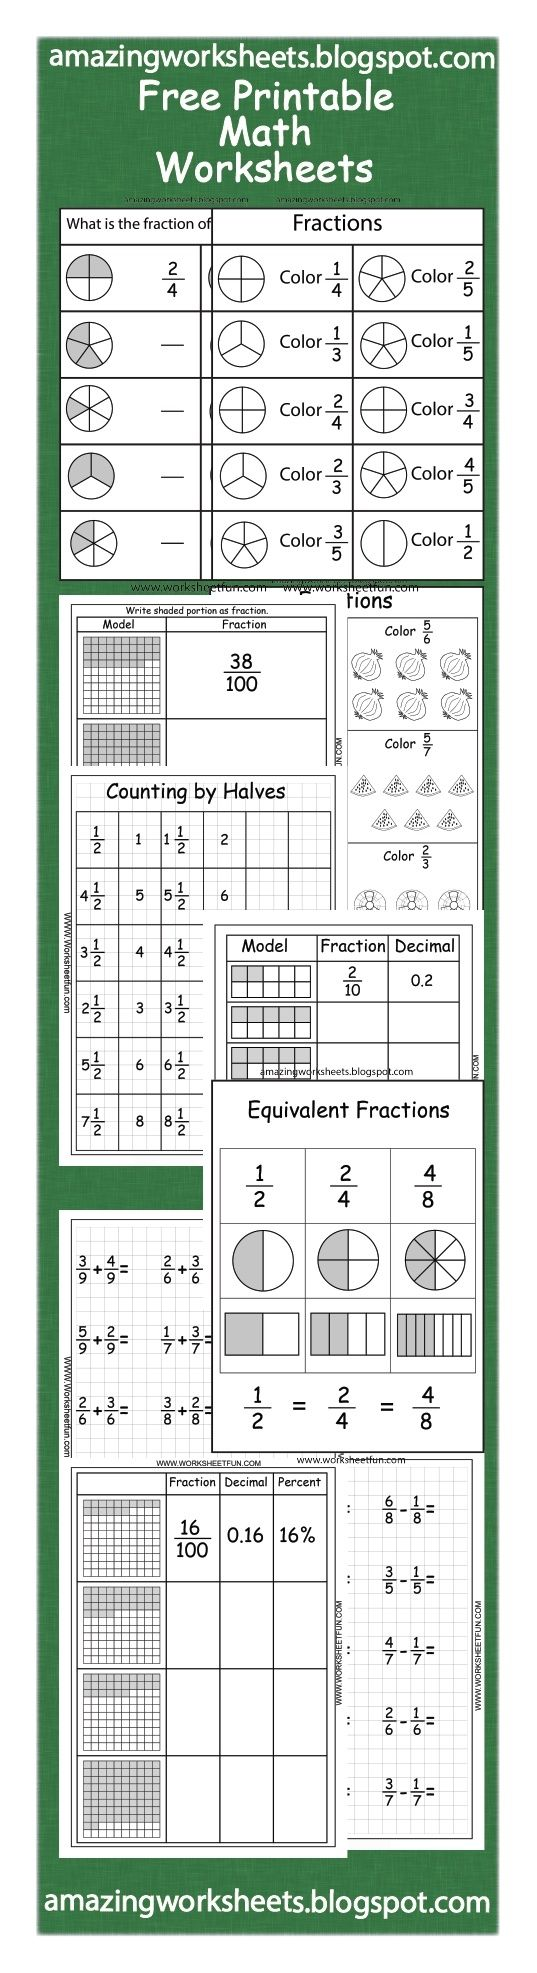 hight resolution of Free Printable Fractions Worksheets By Valeria   Grade 7 Math on Best  Worksheets Collection 84